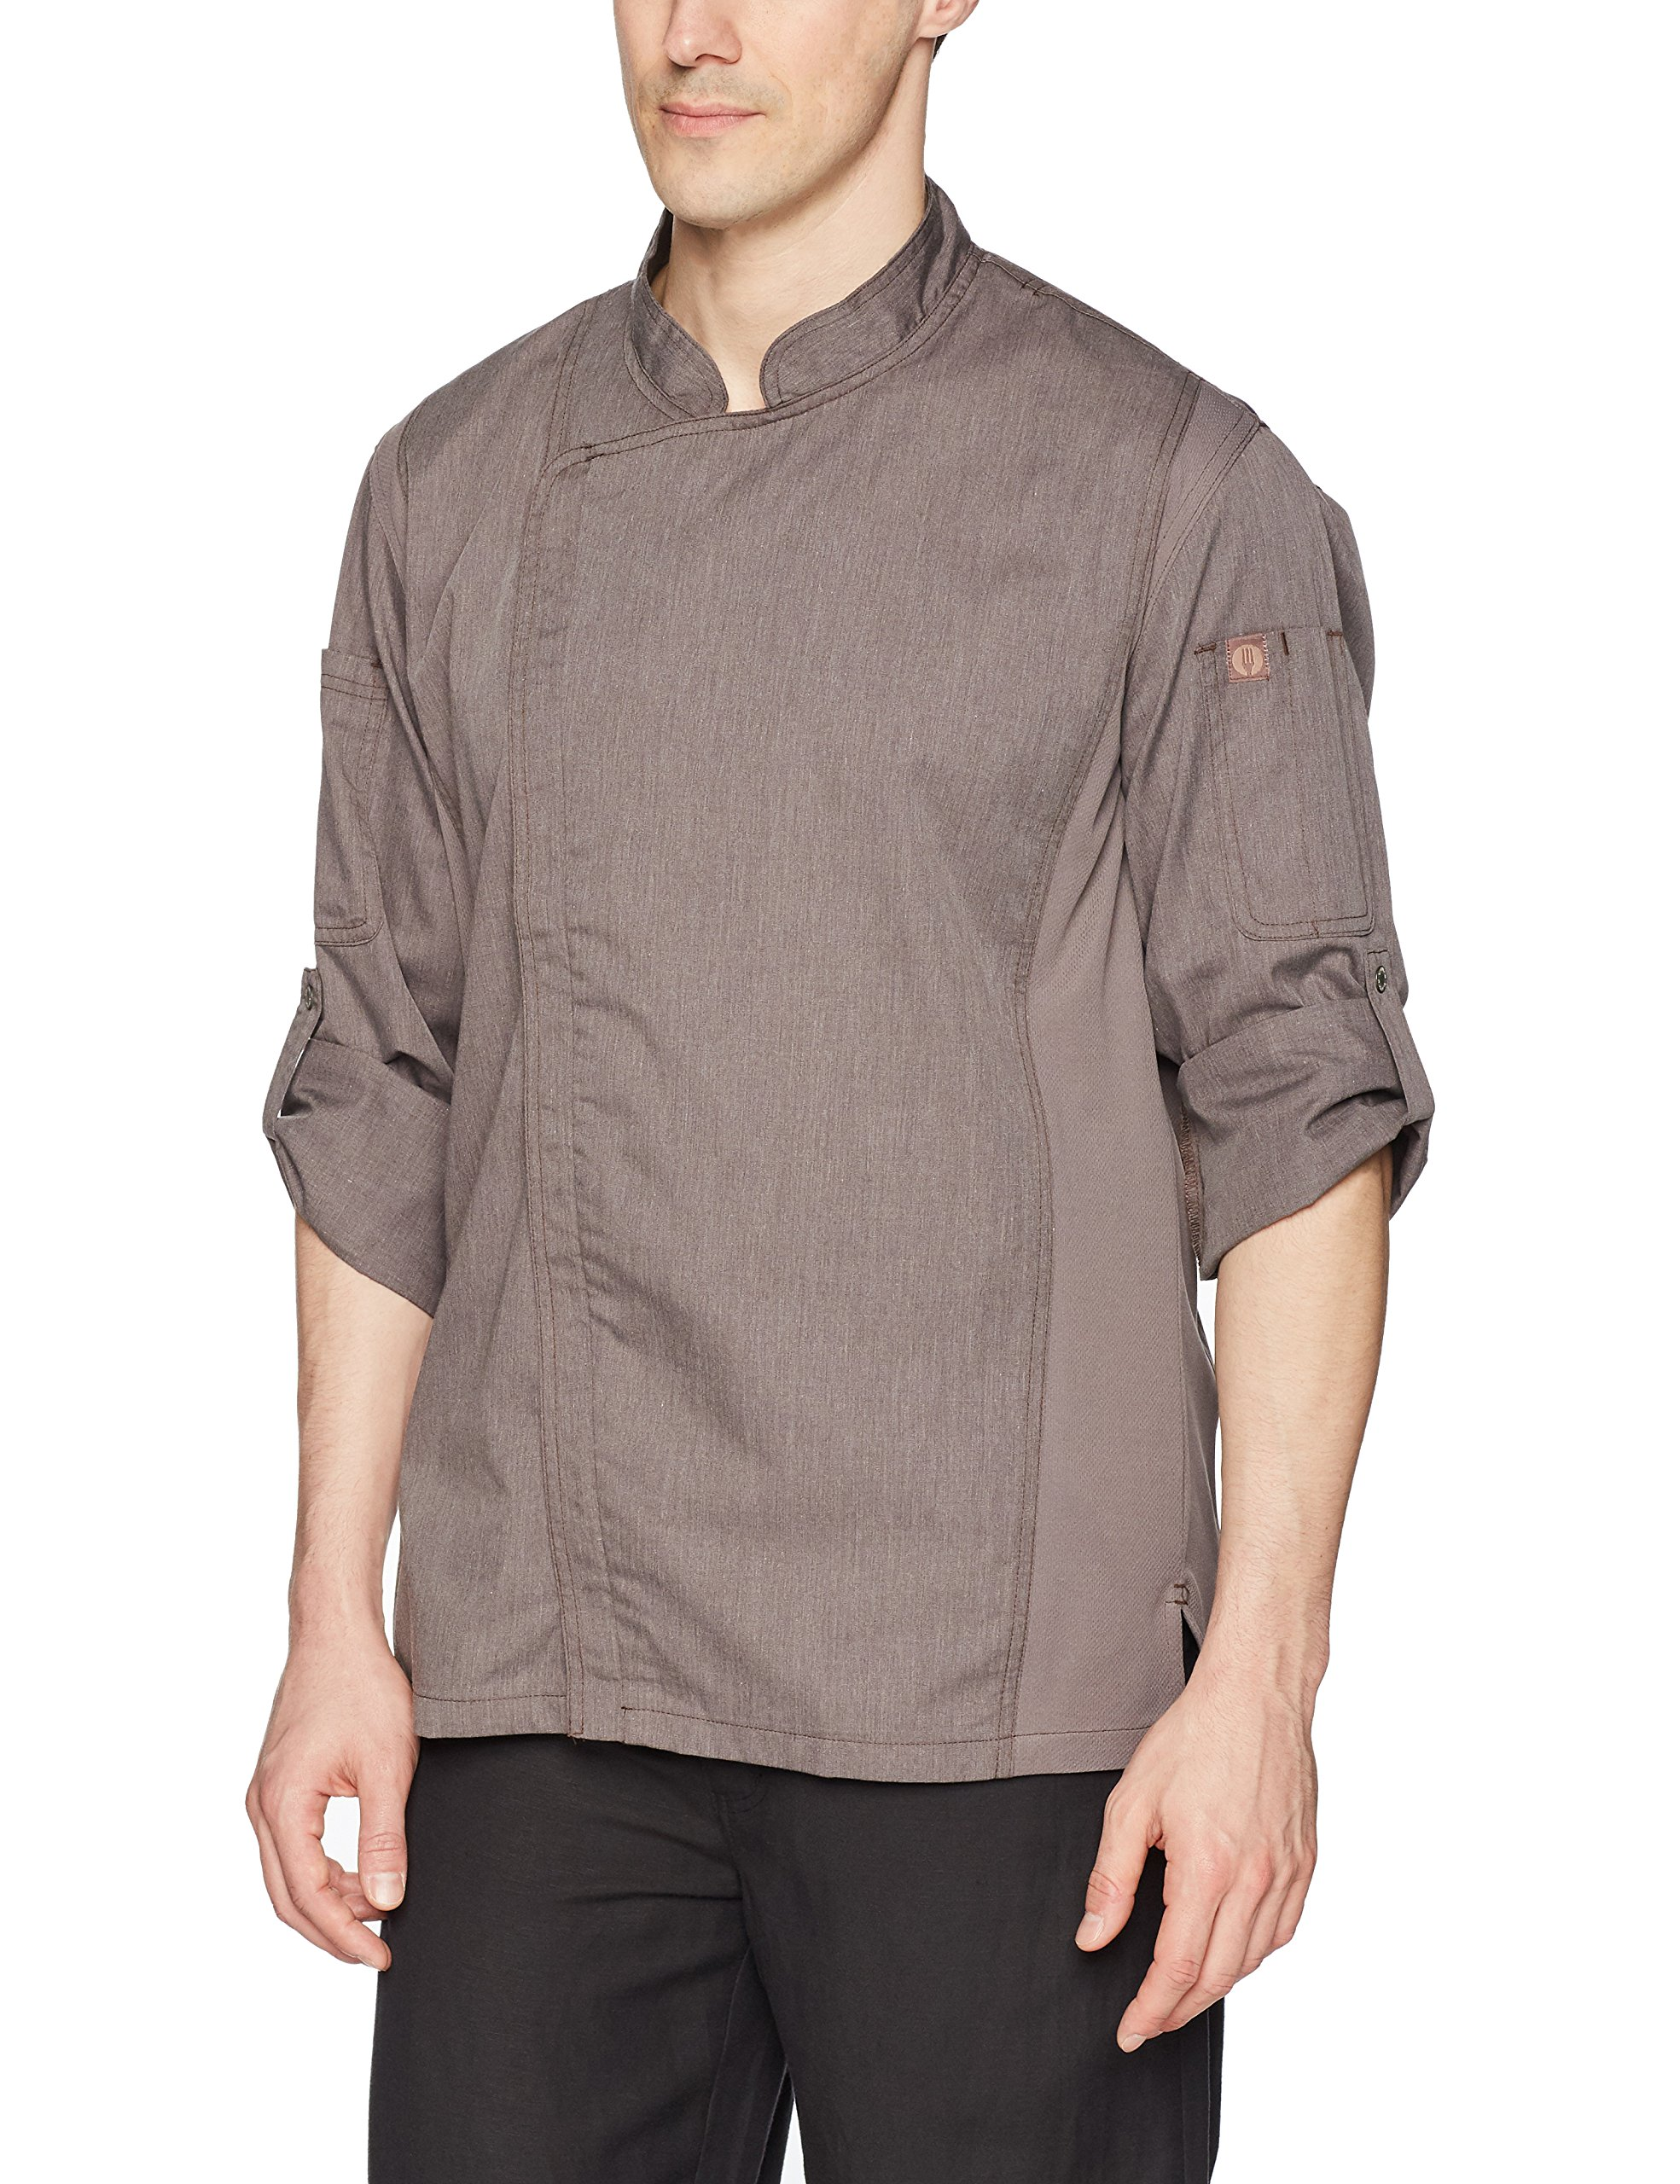 Chef Works Men's Hartford Chef Coat, Graphite Gray, Large